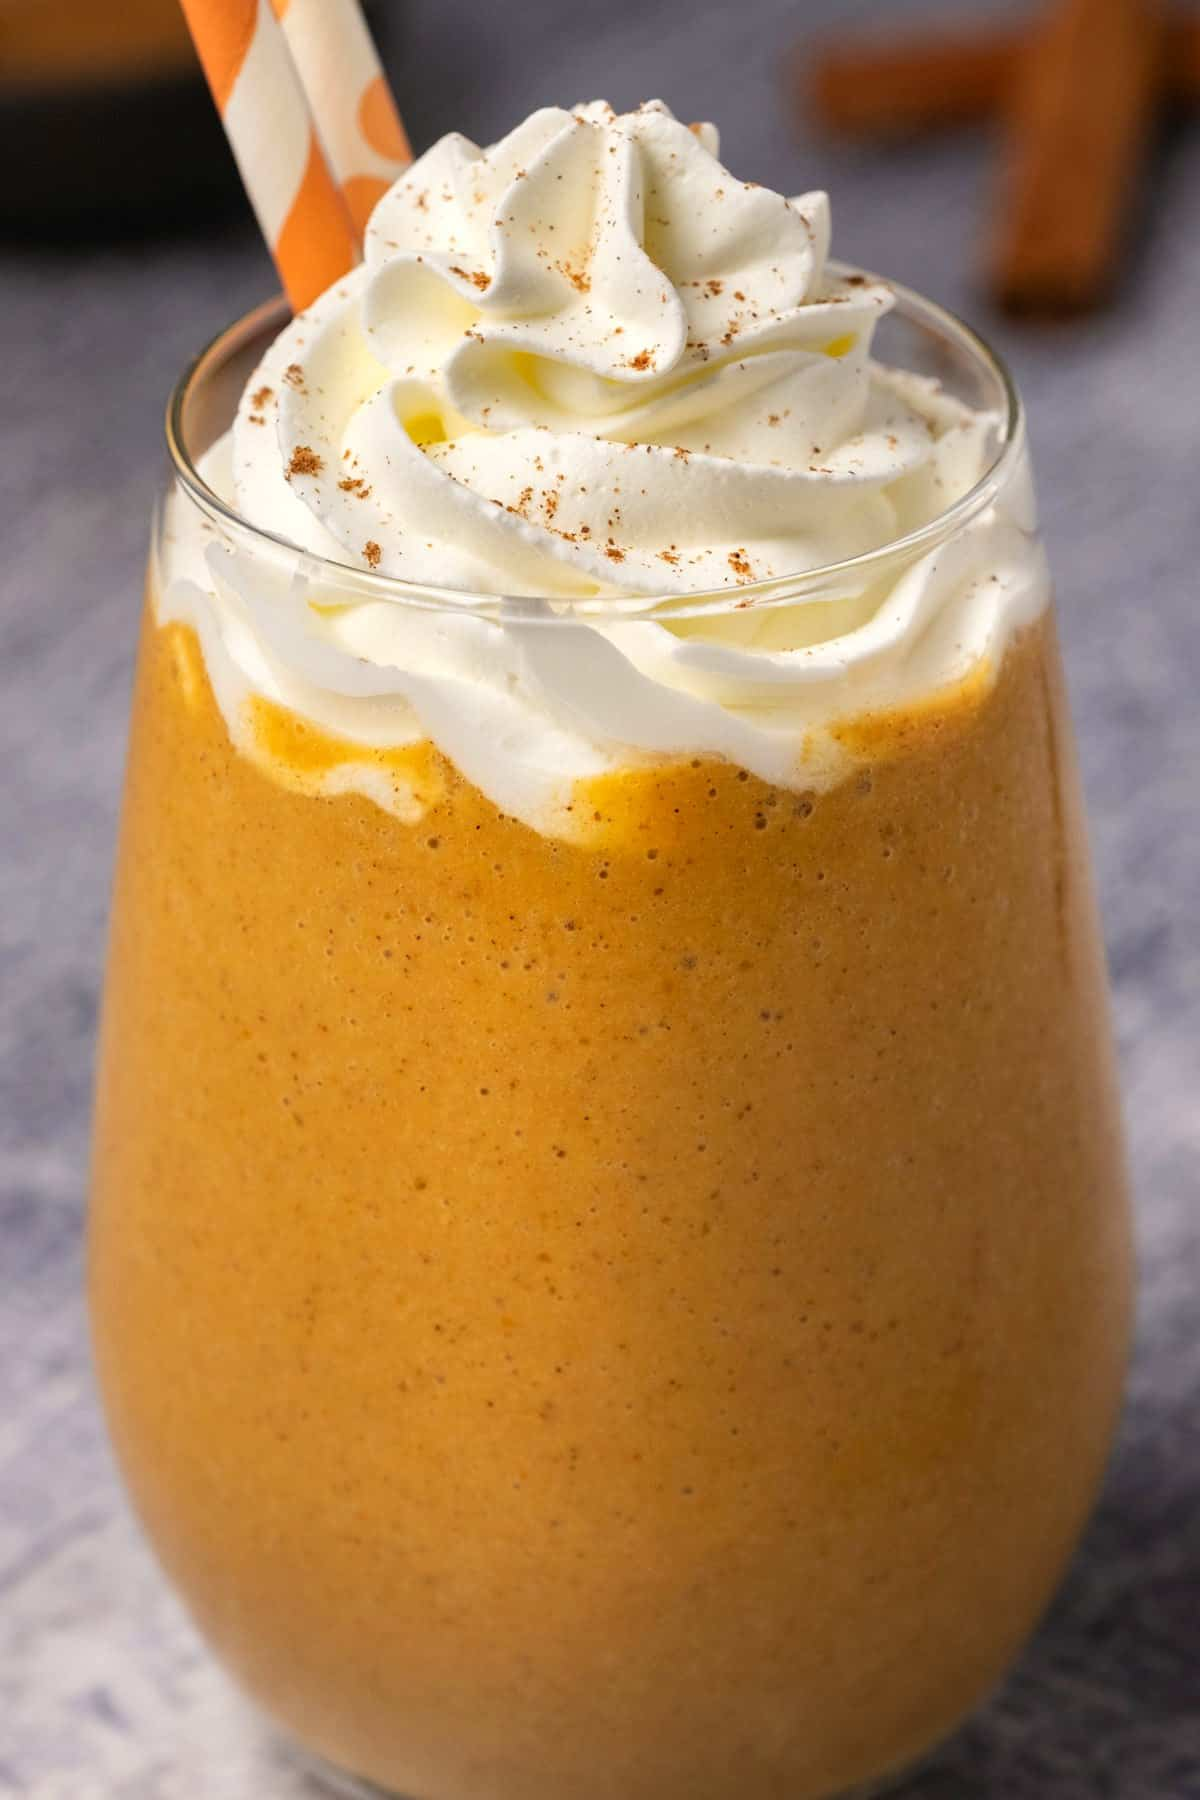 Pumpkin smoothie topped with whipped cream in a glass with two orange and white straws.